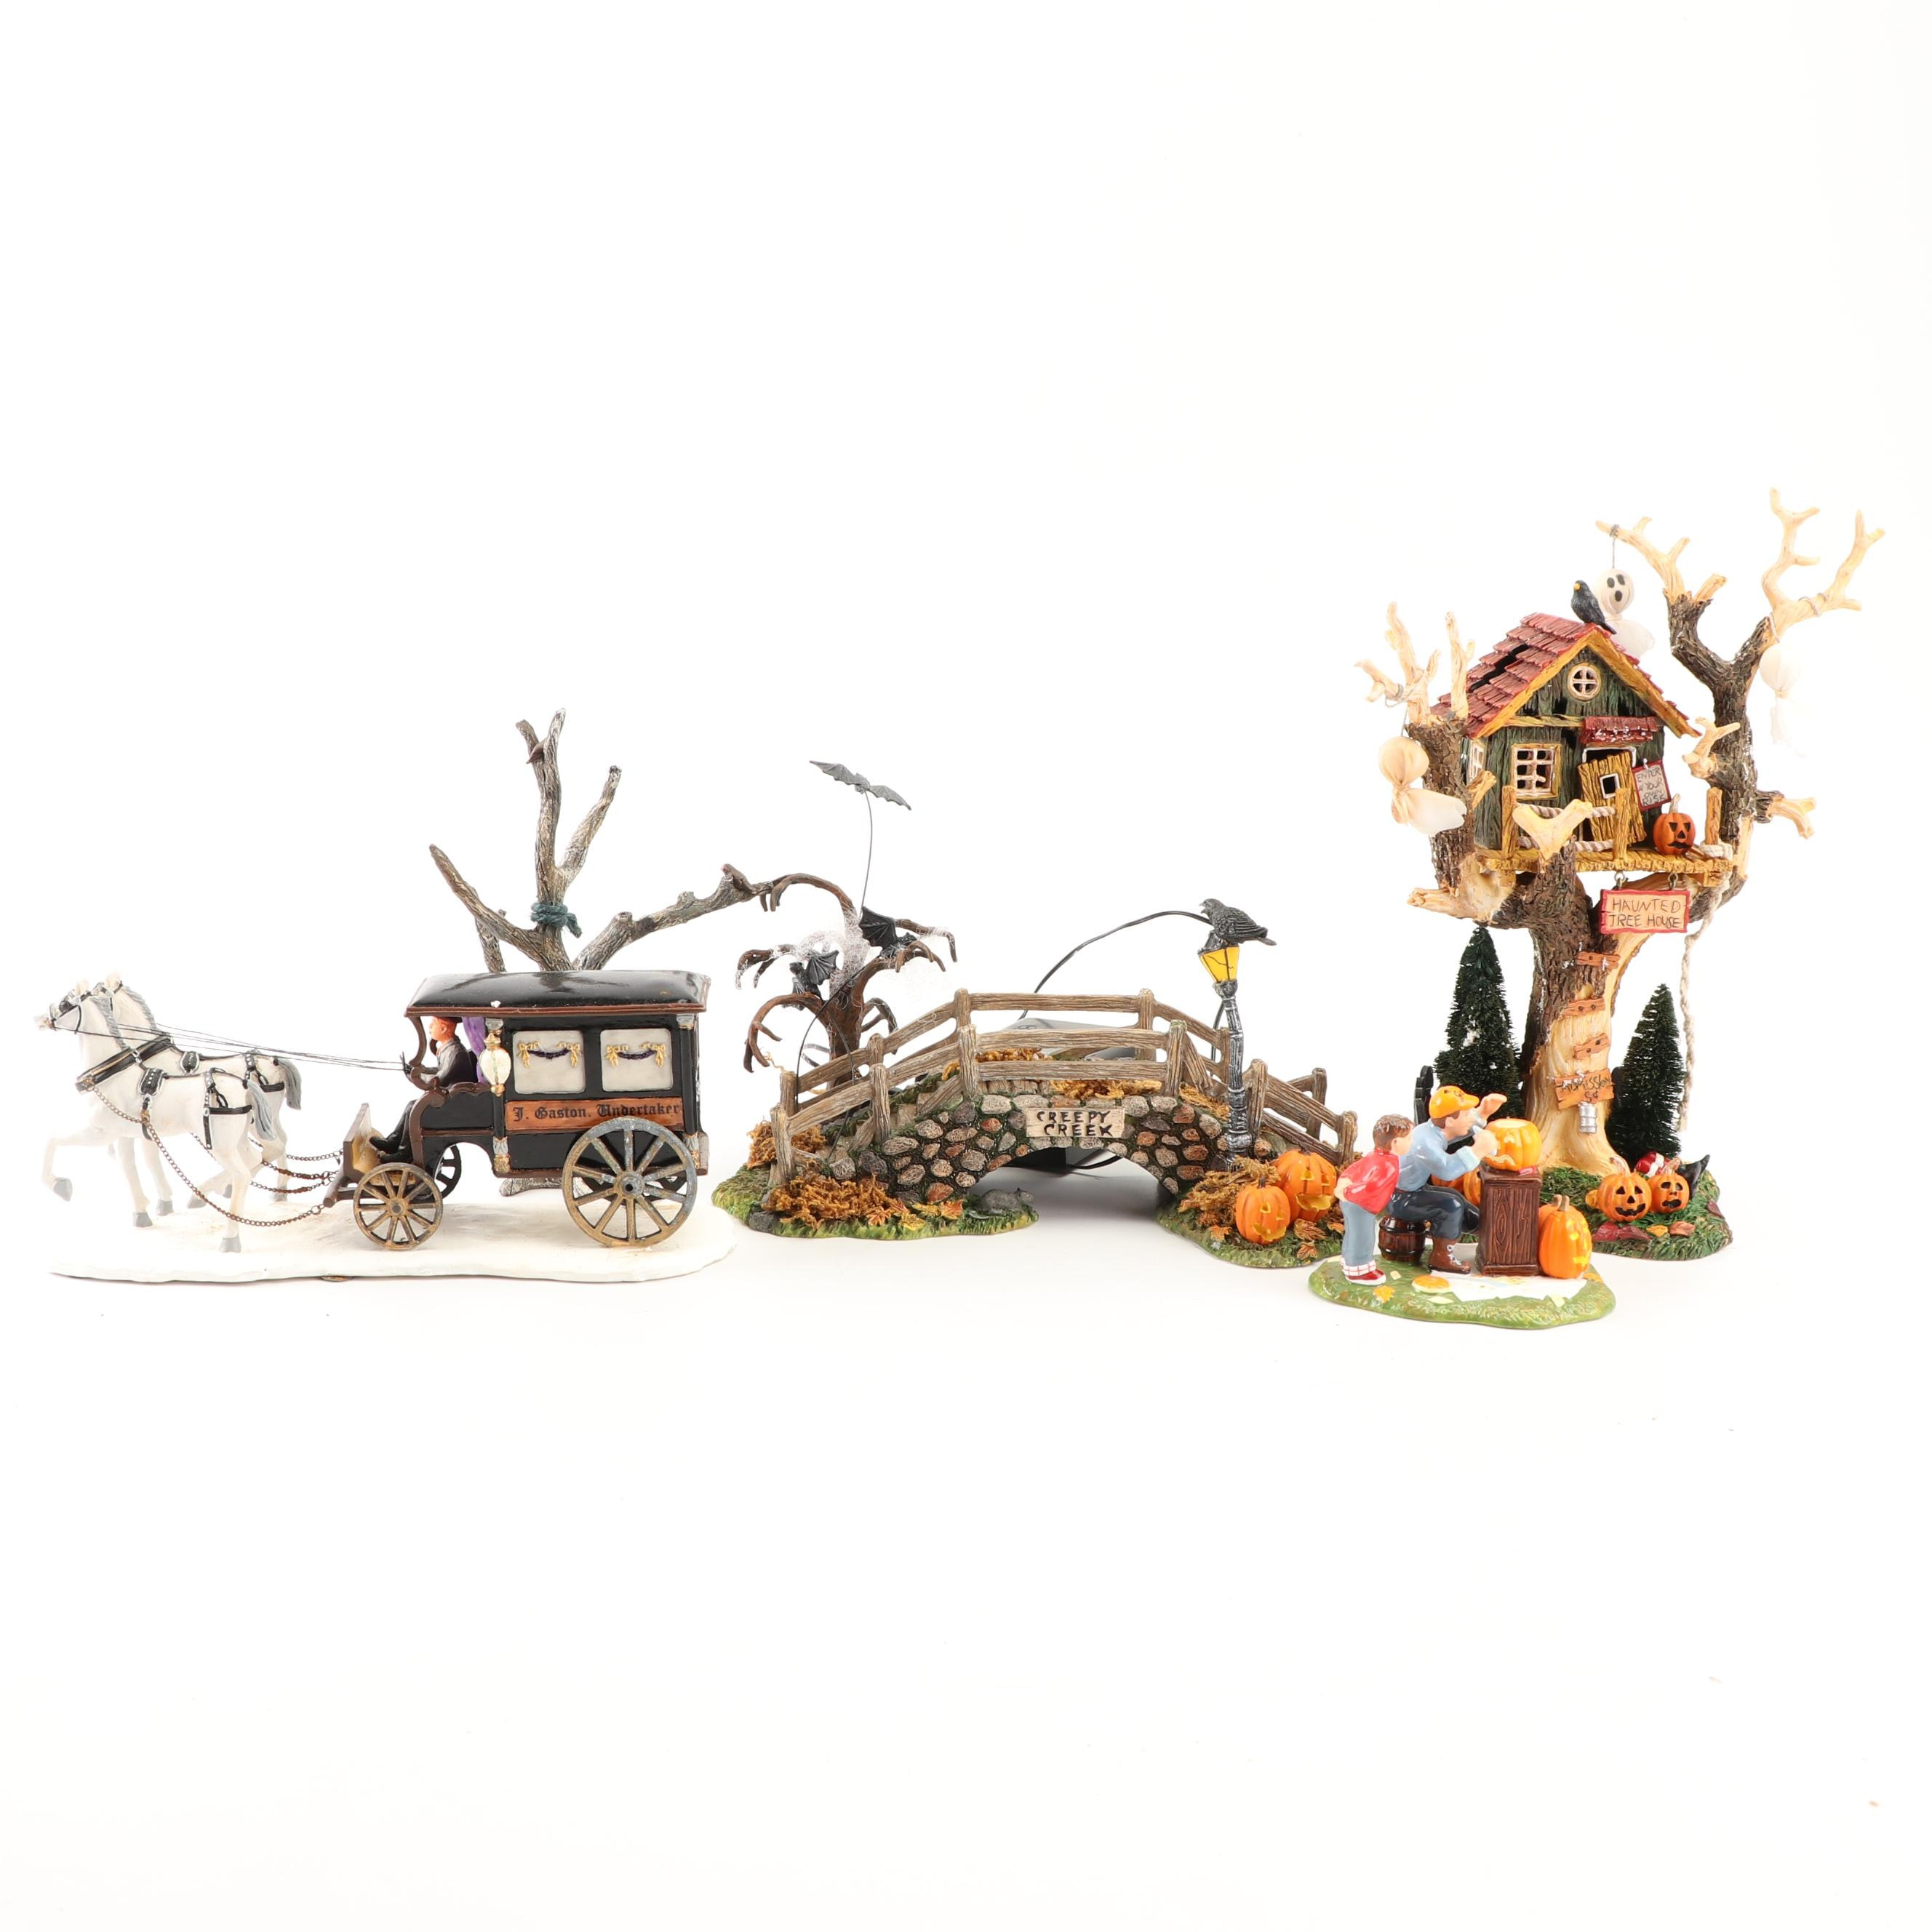 Department 56 Halloween Decor and Accessories